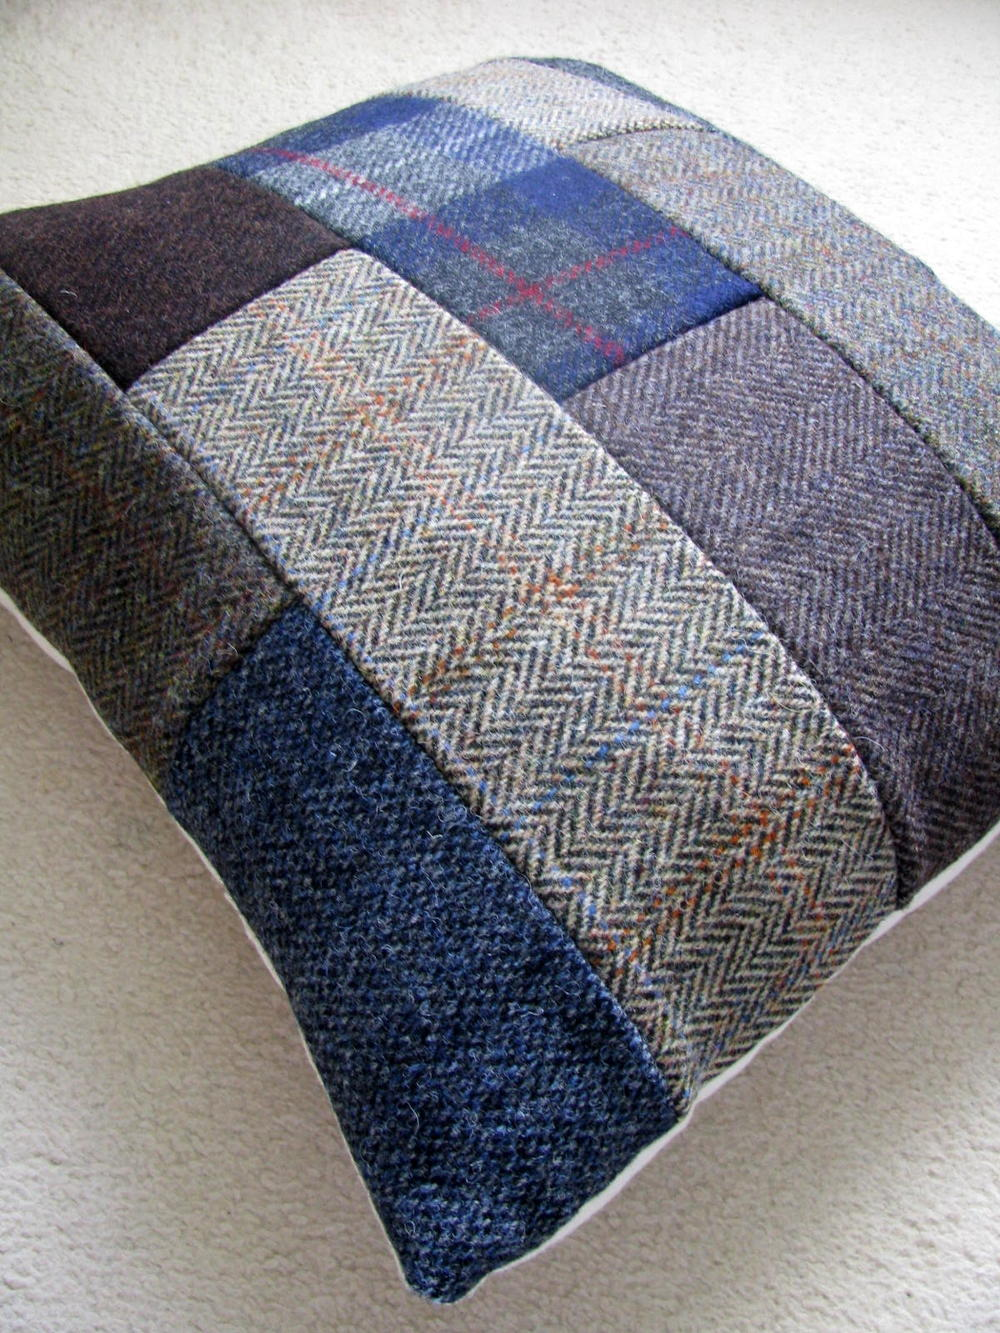 Patchwork Tweed DIY Throw Pillows DIYIdeaCenter.com